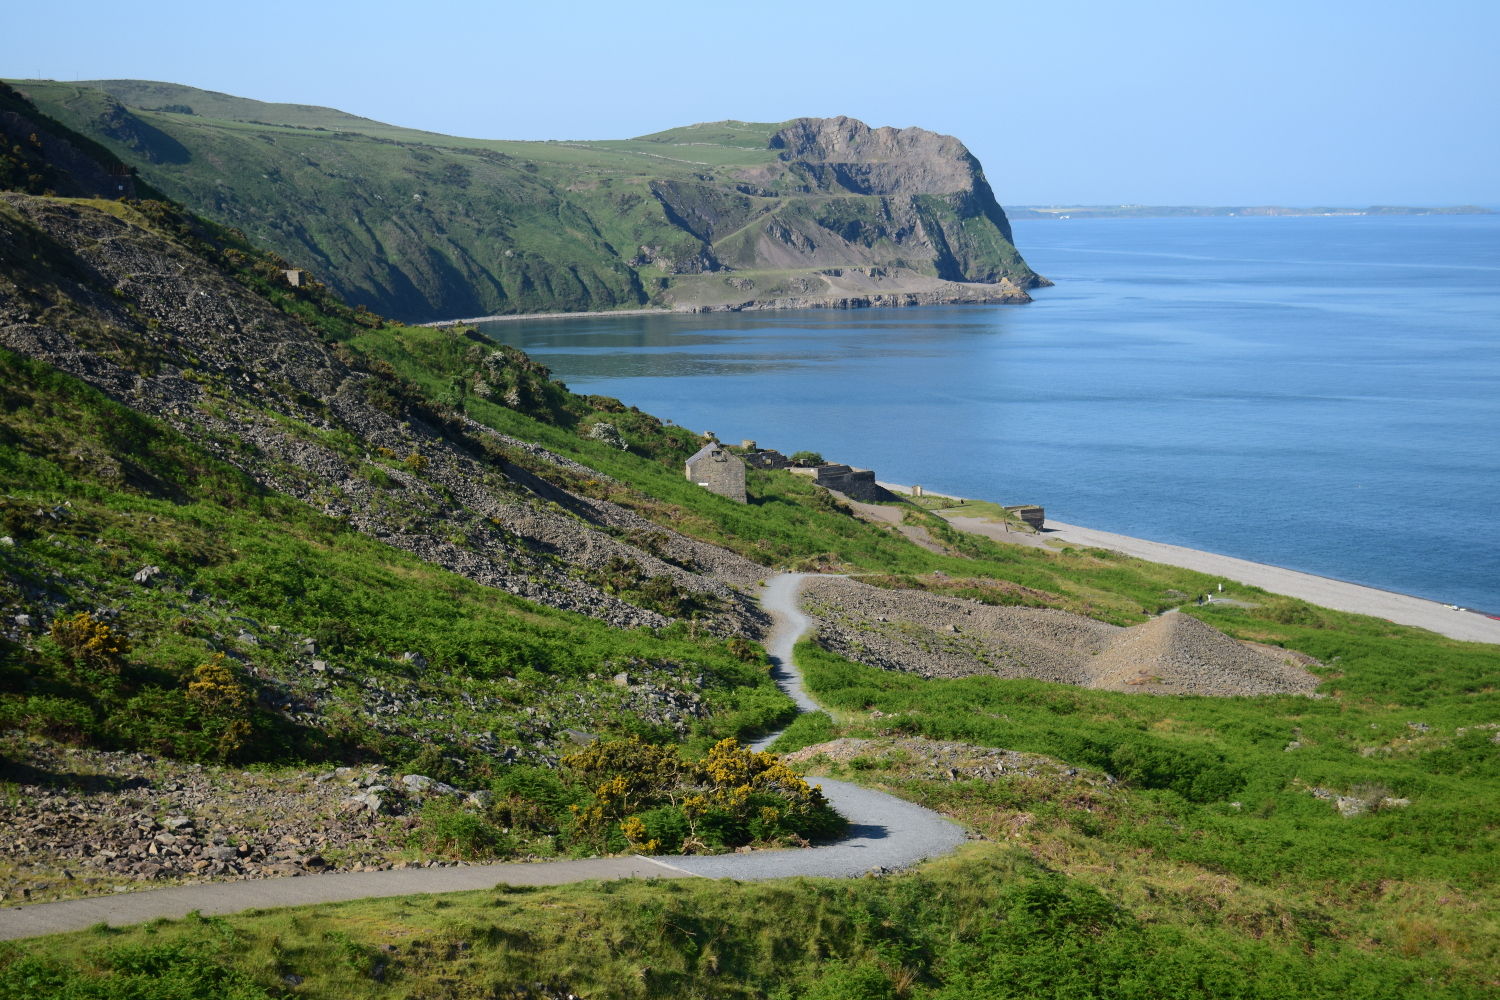 Wales Coast Path Nant Gwrtheryn Llithfaen Llyn Peninsula. Path to beach and coast